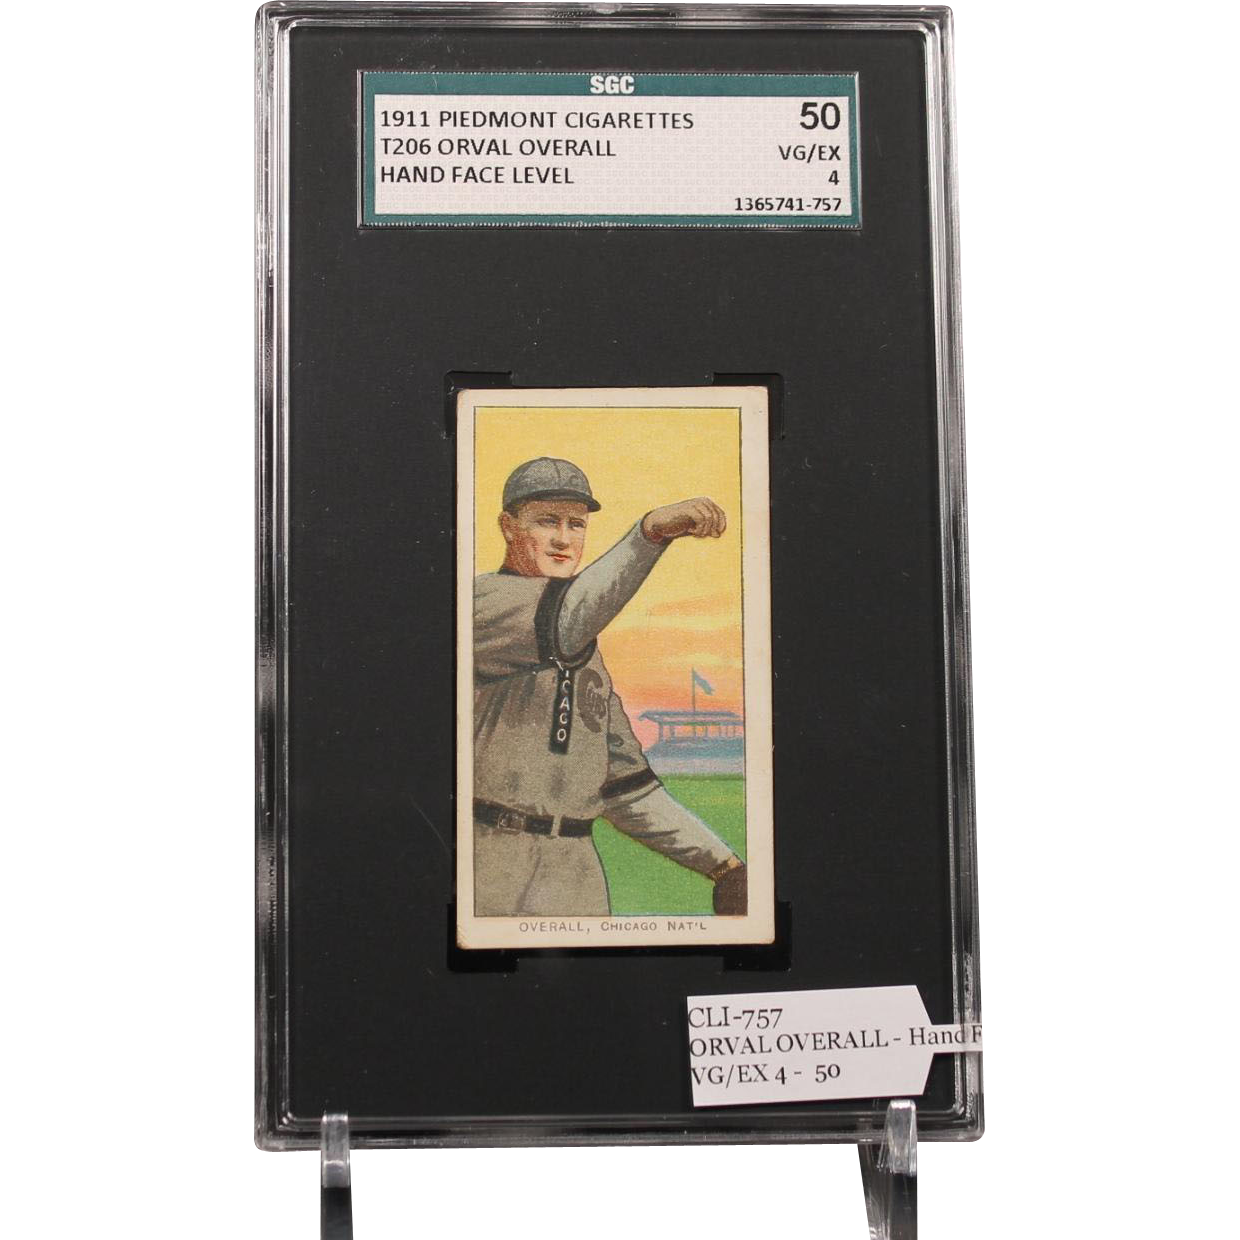 T206 ORVAL OVERALL - Hand Face Level SGC grade 50 VG/EX 4